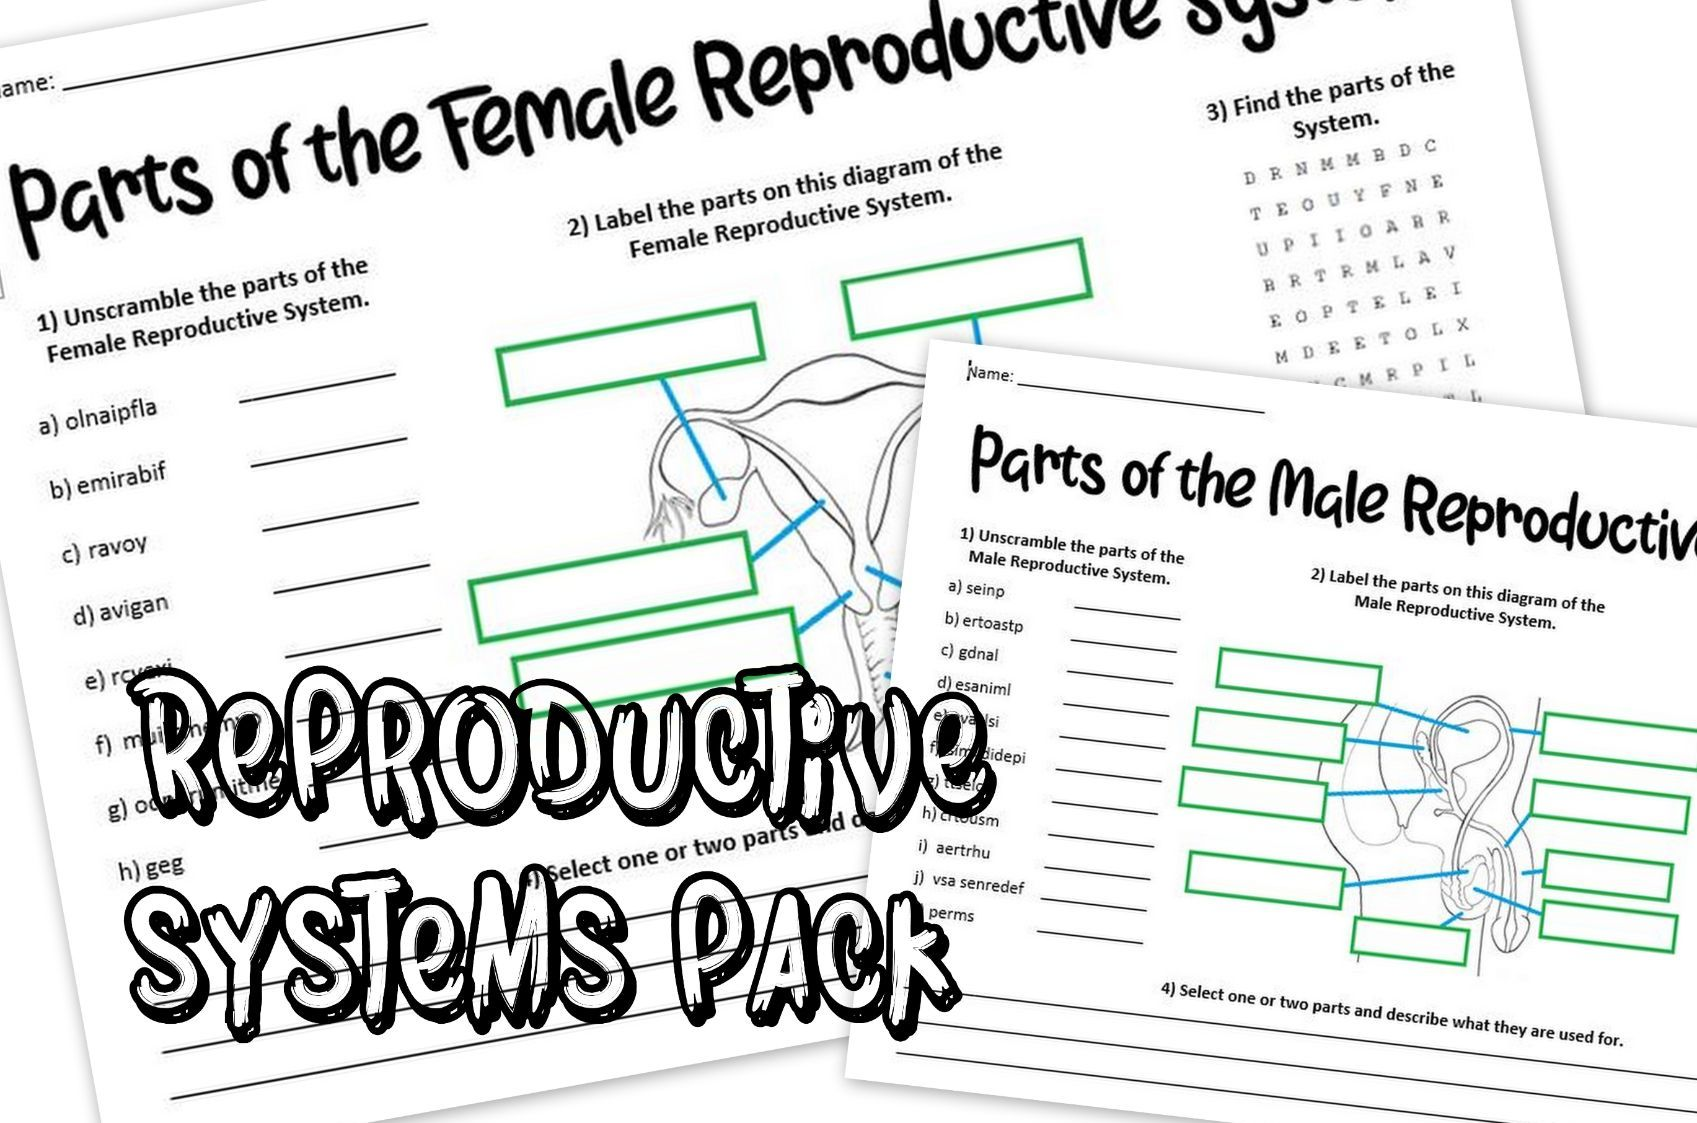 Reproductive Systems Pack